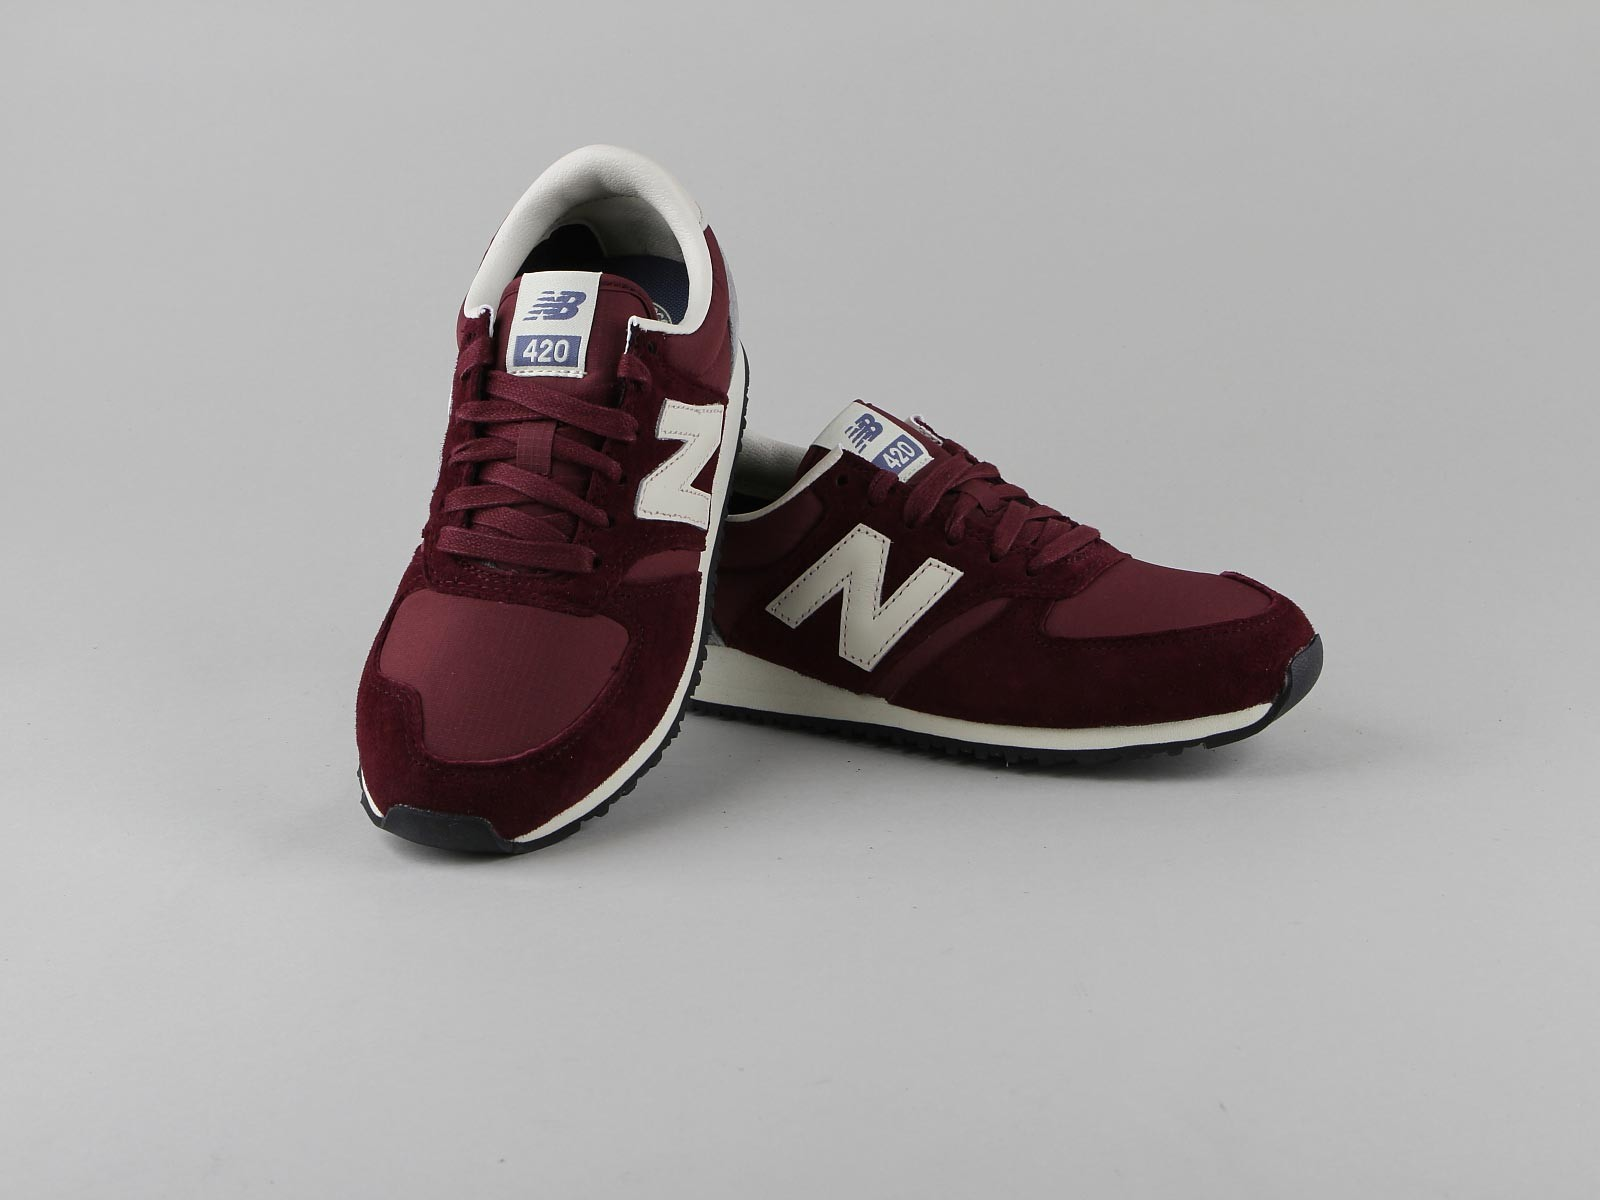 new balance u420 homme bordeaux